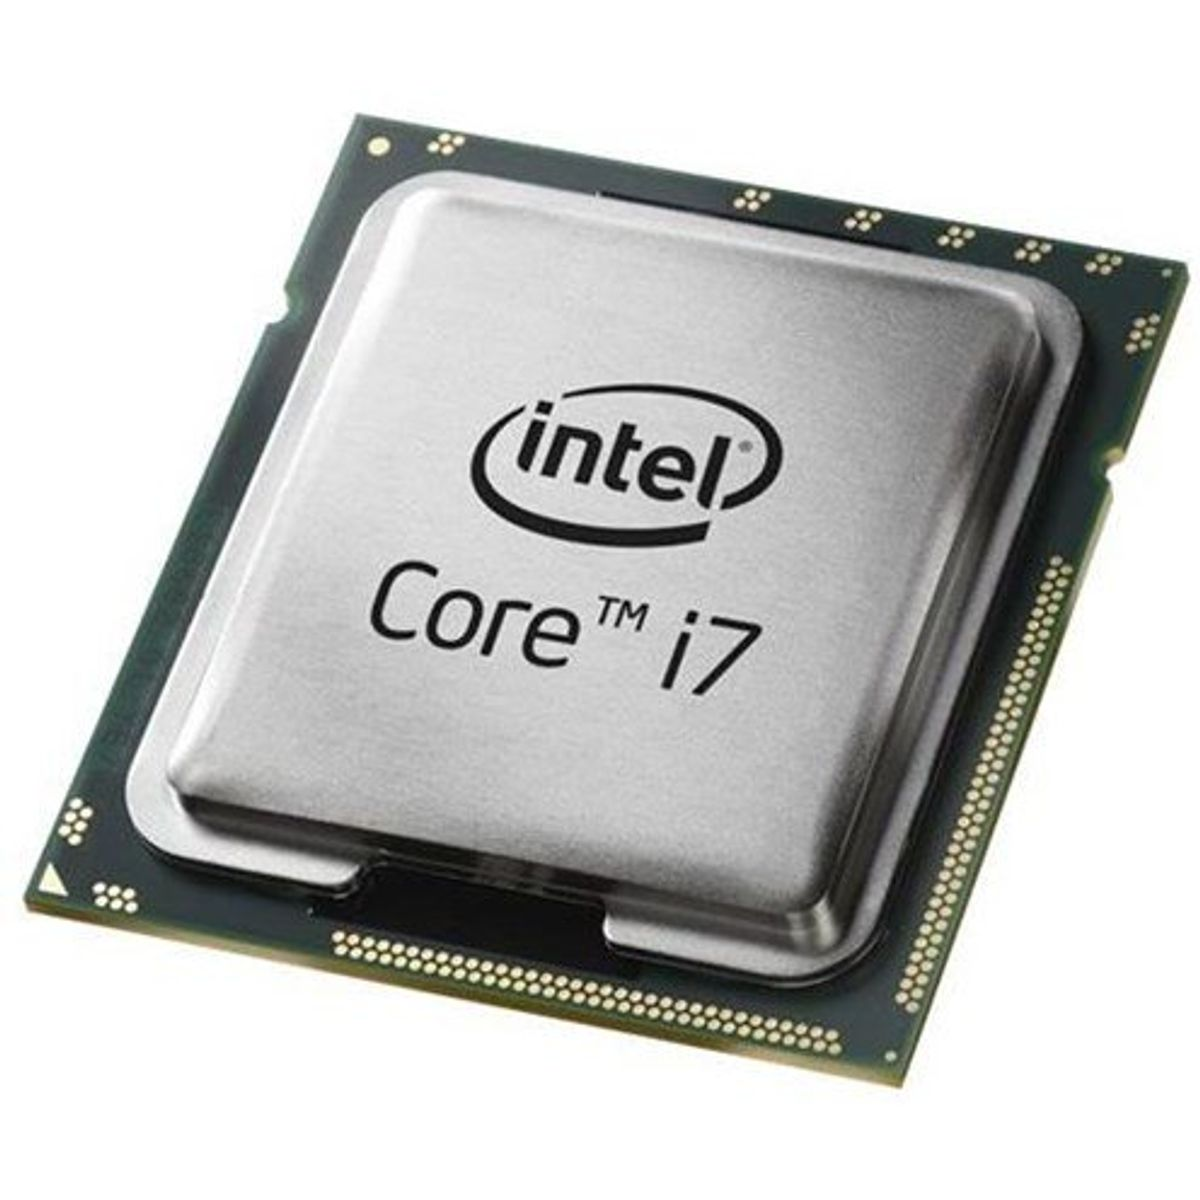 Intel Core 6800K (15M Cache, up to 3.60 GHz)